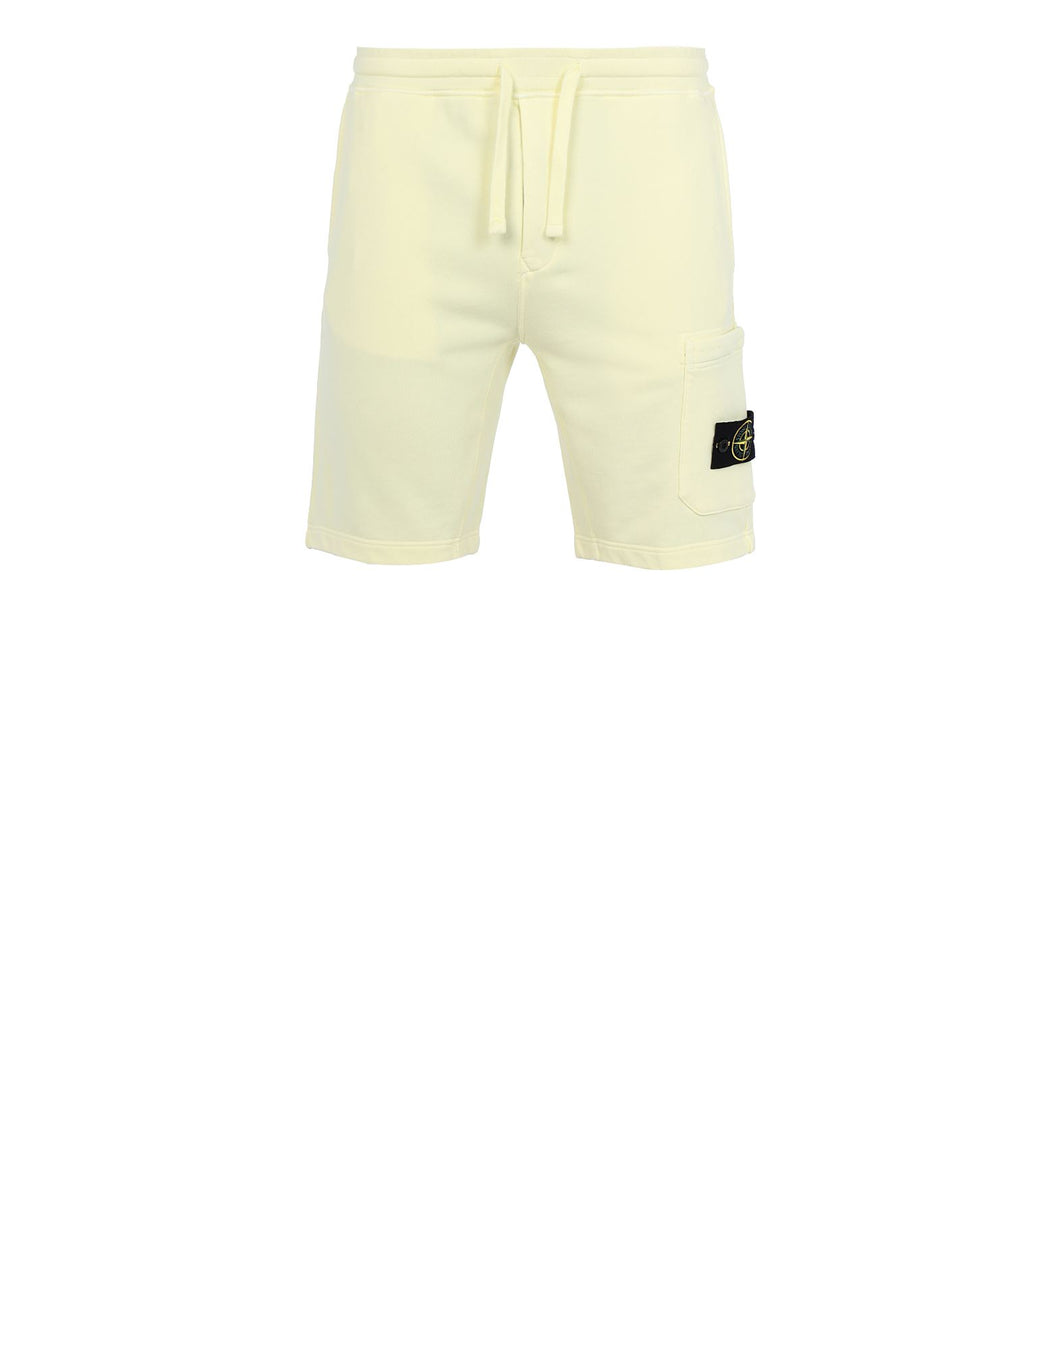 STONE ISLAND 64651 BERMUDA SHORTS Mens Apparel